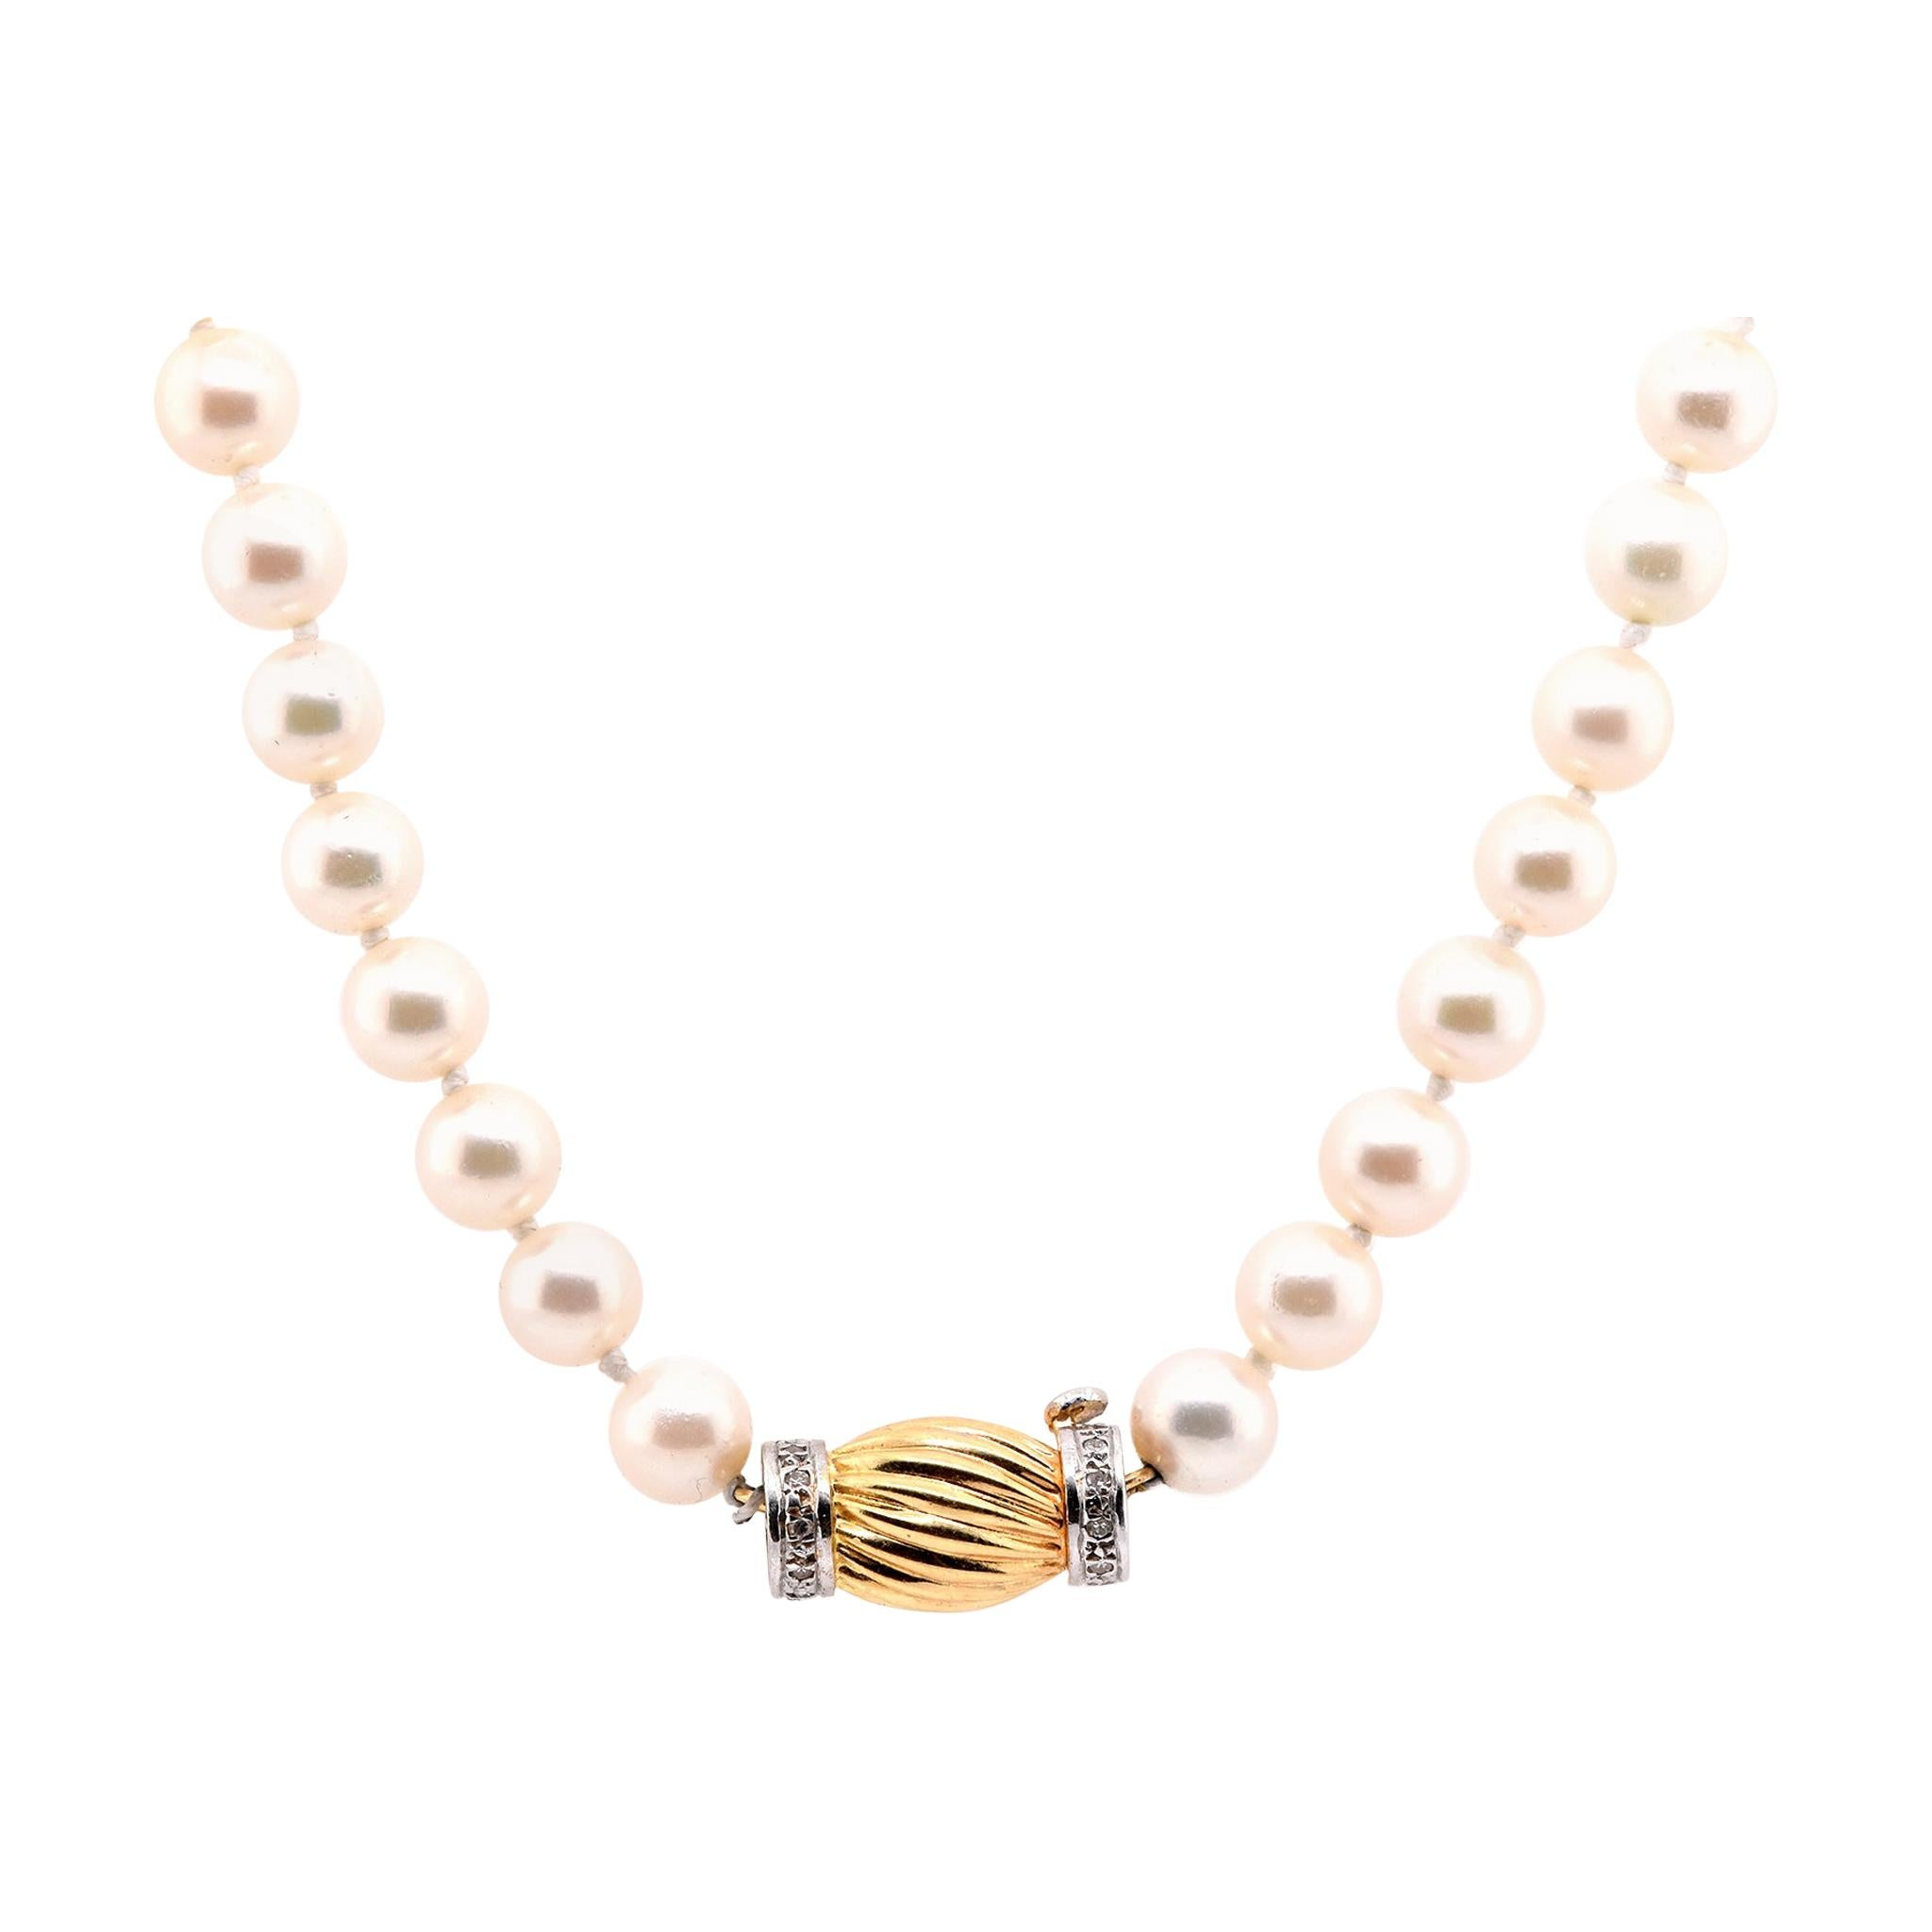 14 Karat Yellow Gold Pearl and Diamond Knotted Necklace